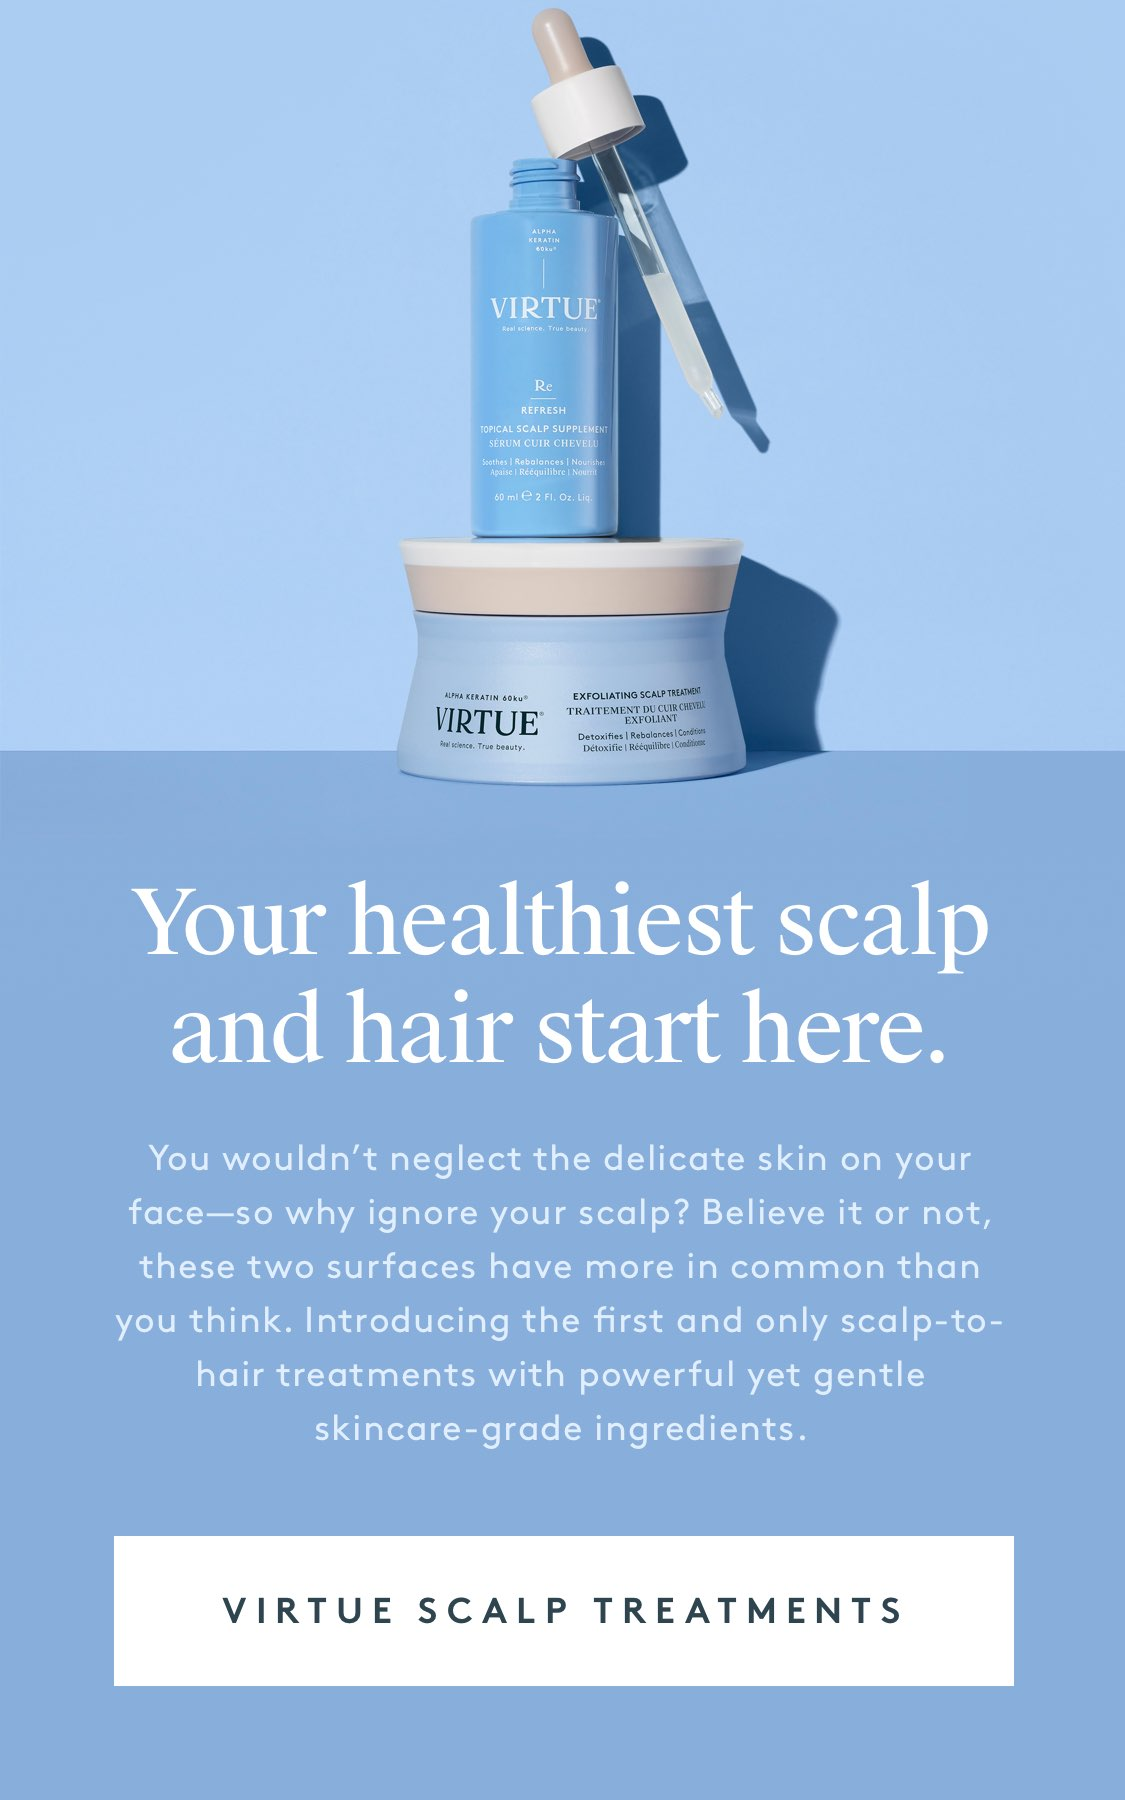 Your healthiest scalp 